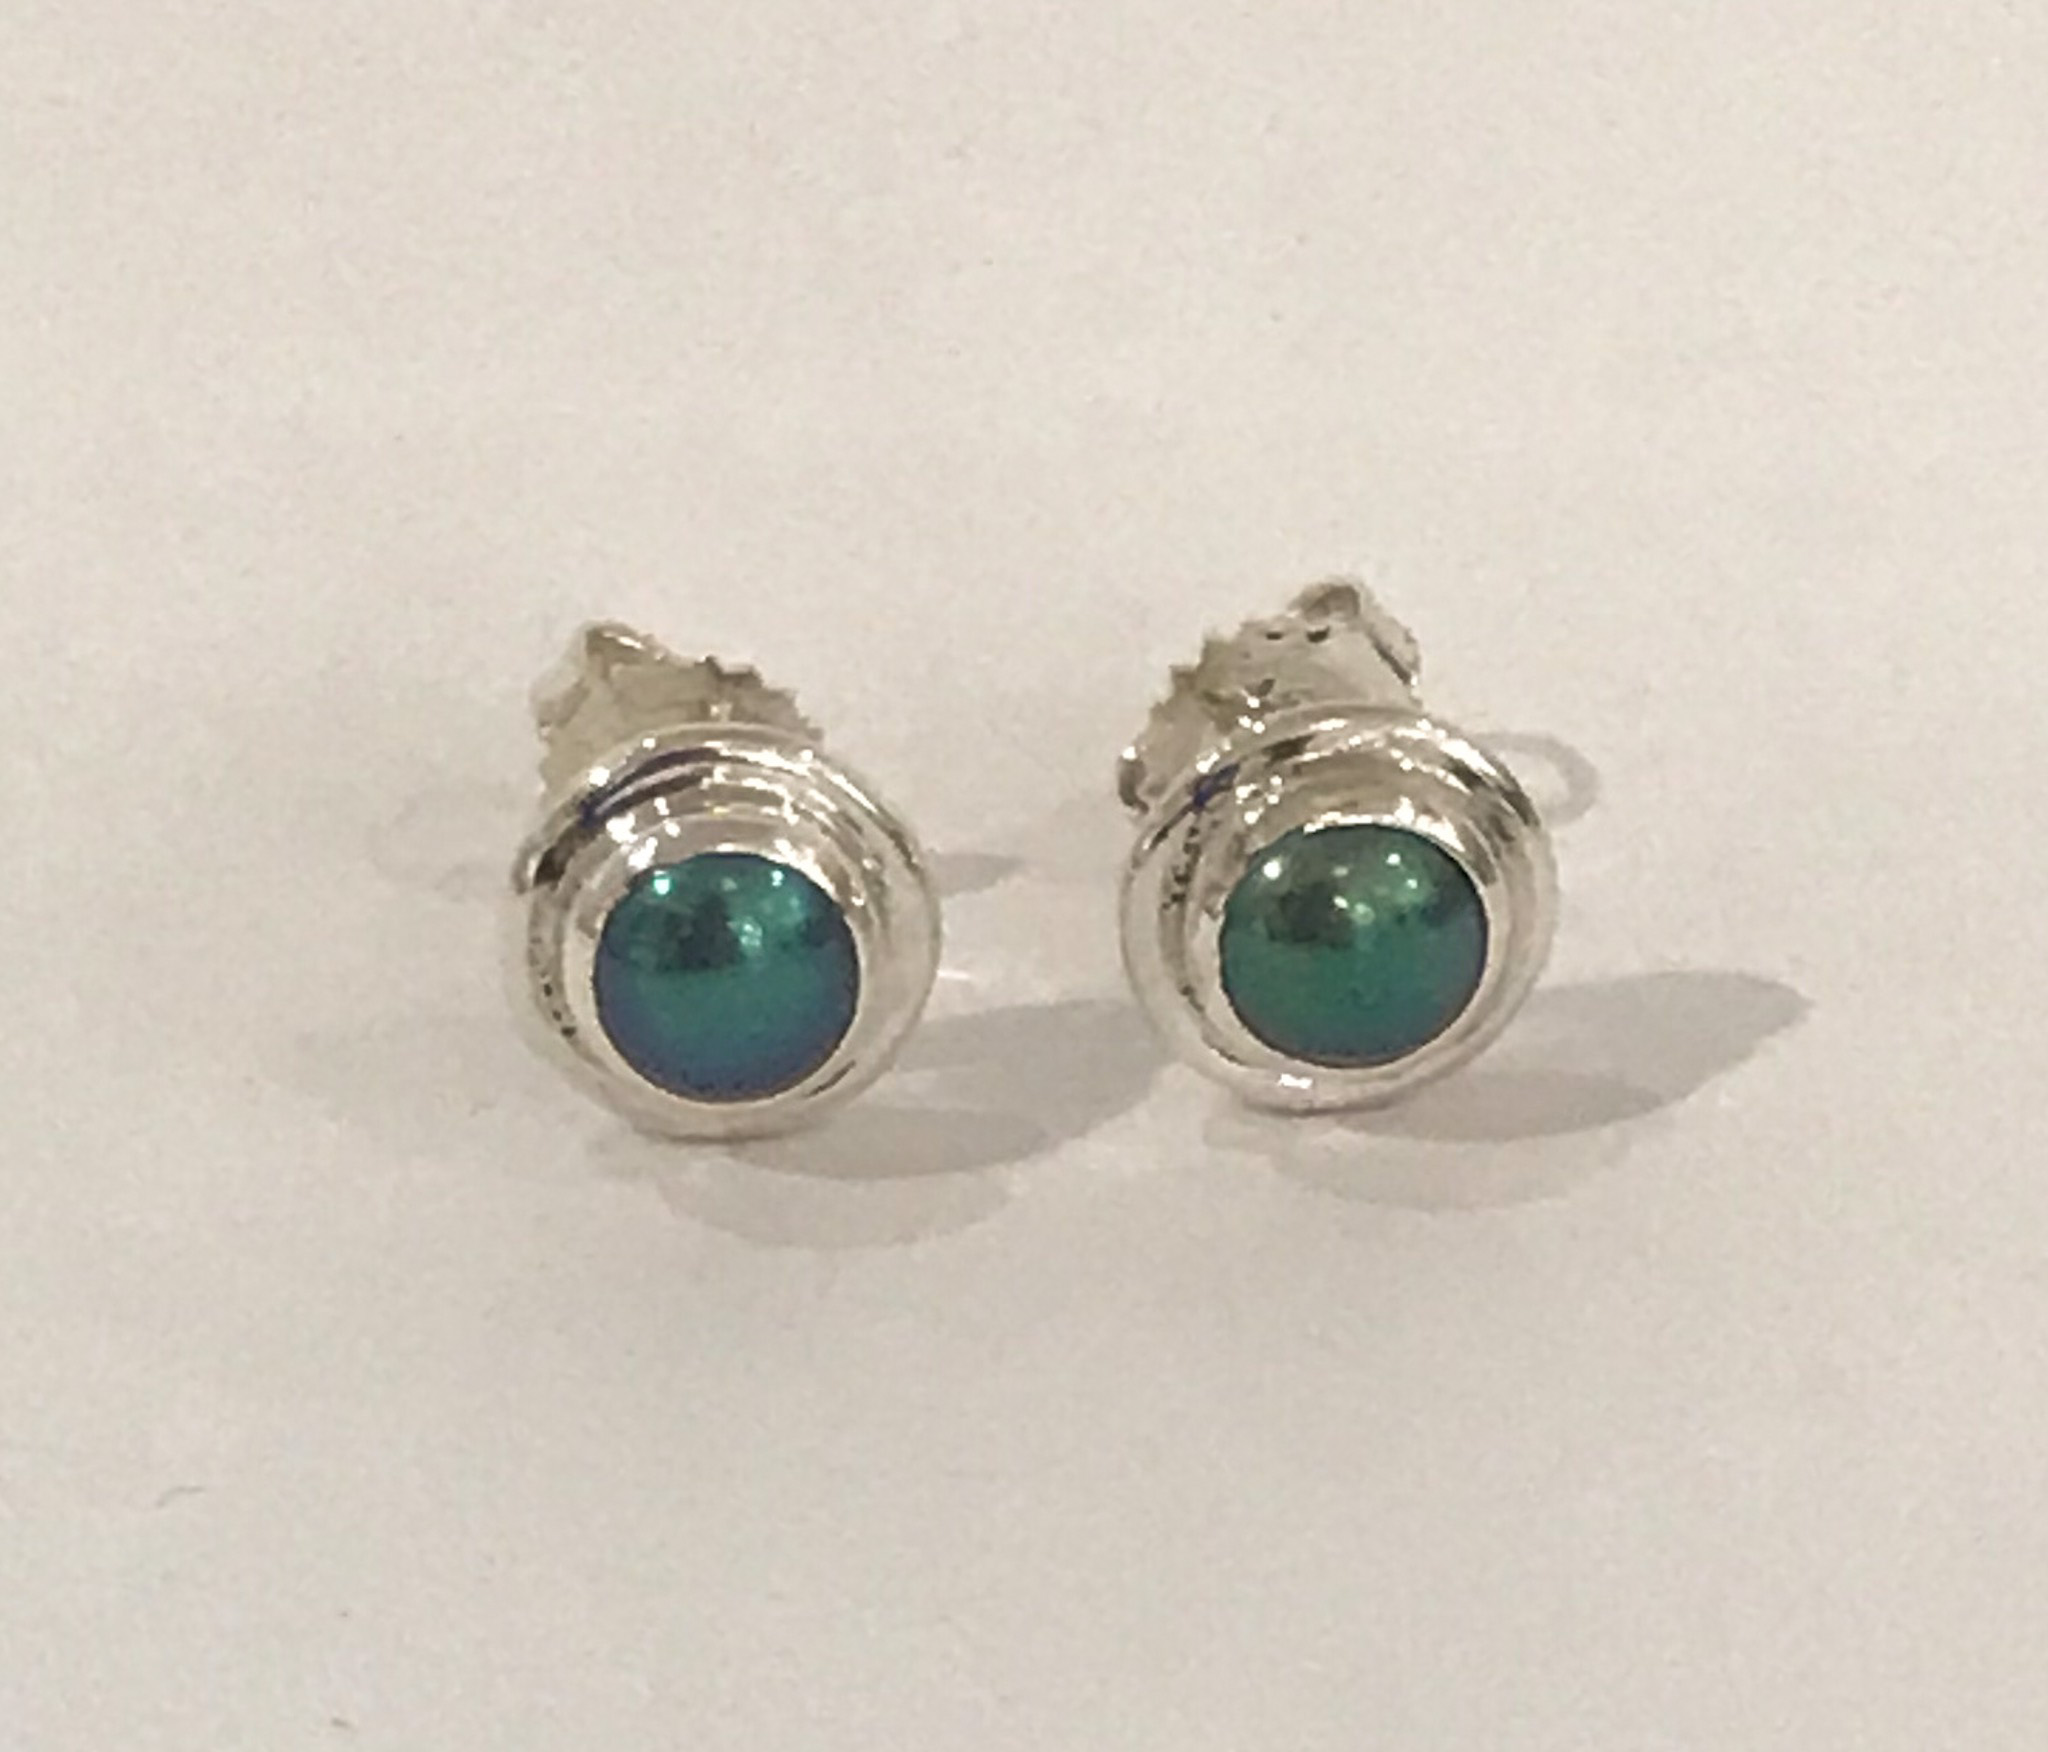 Sterling silver stud earrings set with blue/green freshwater pearls, $80